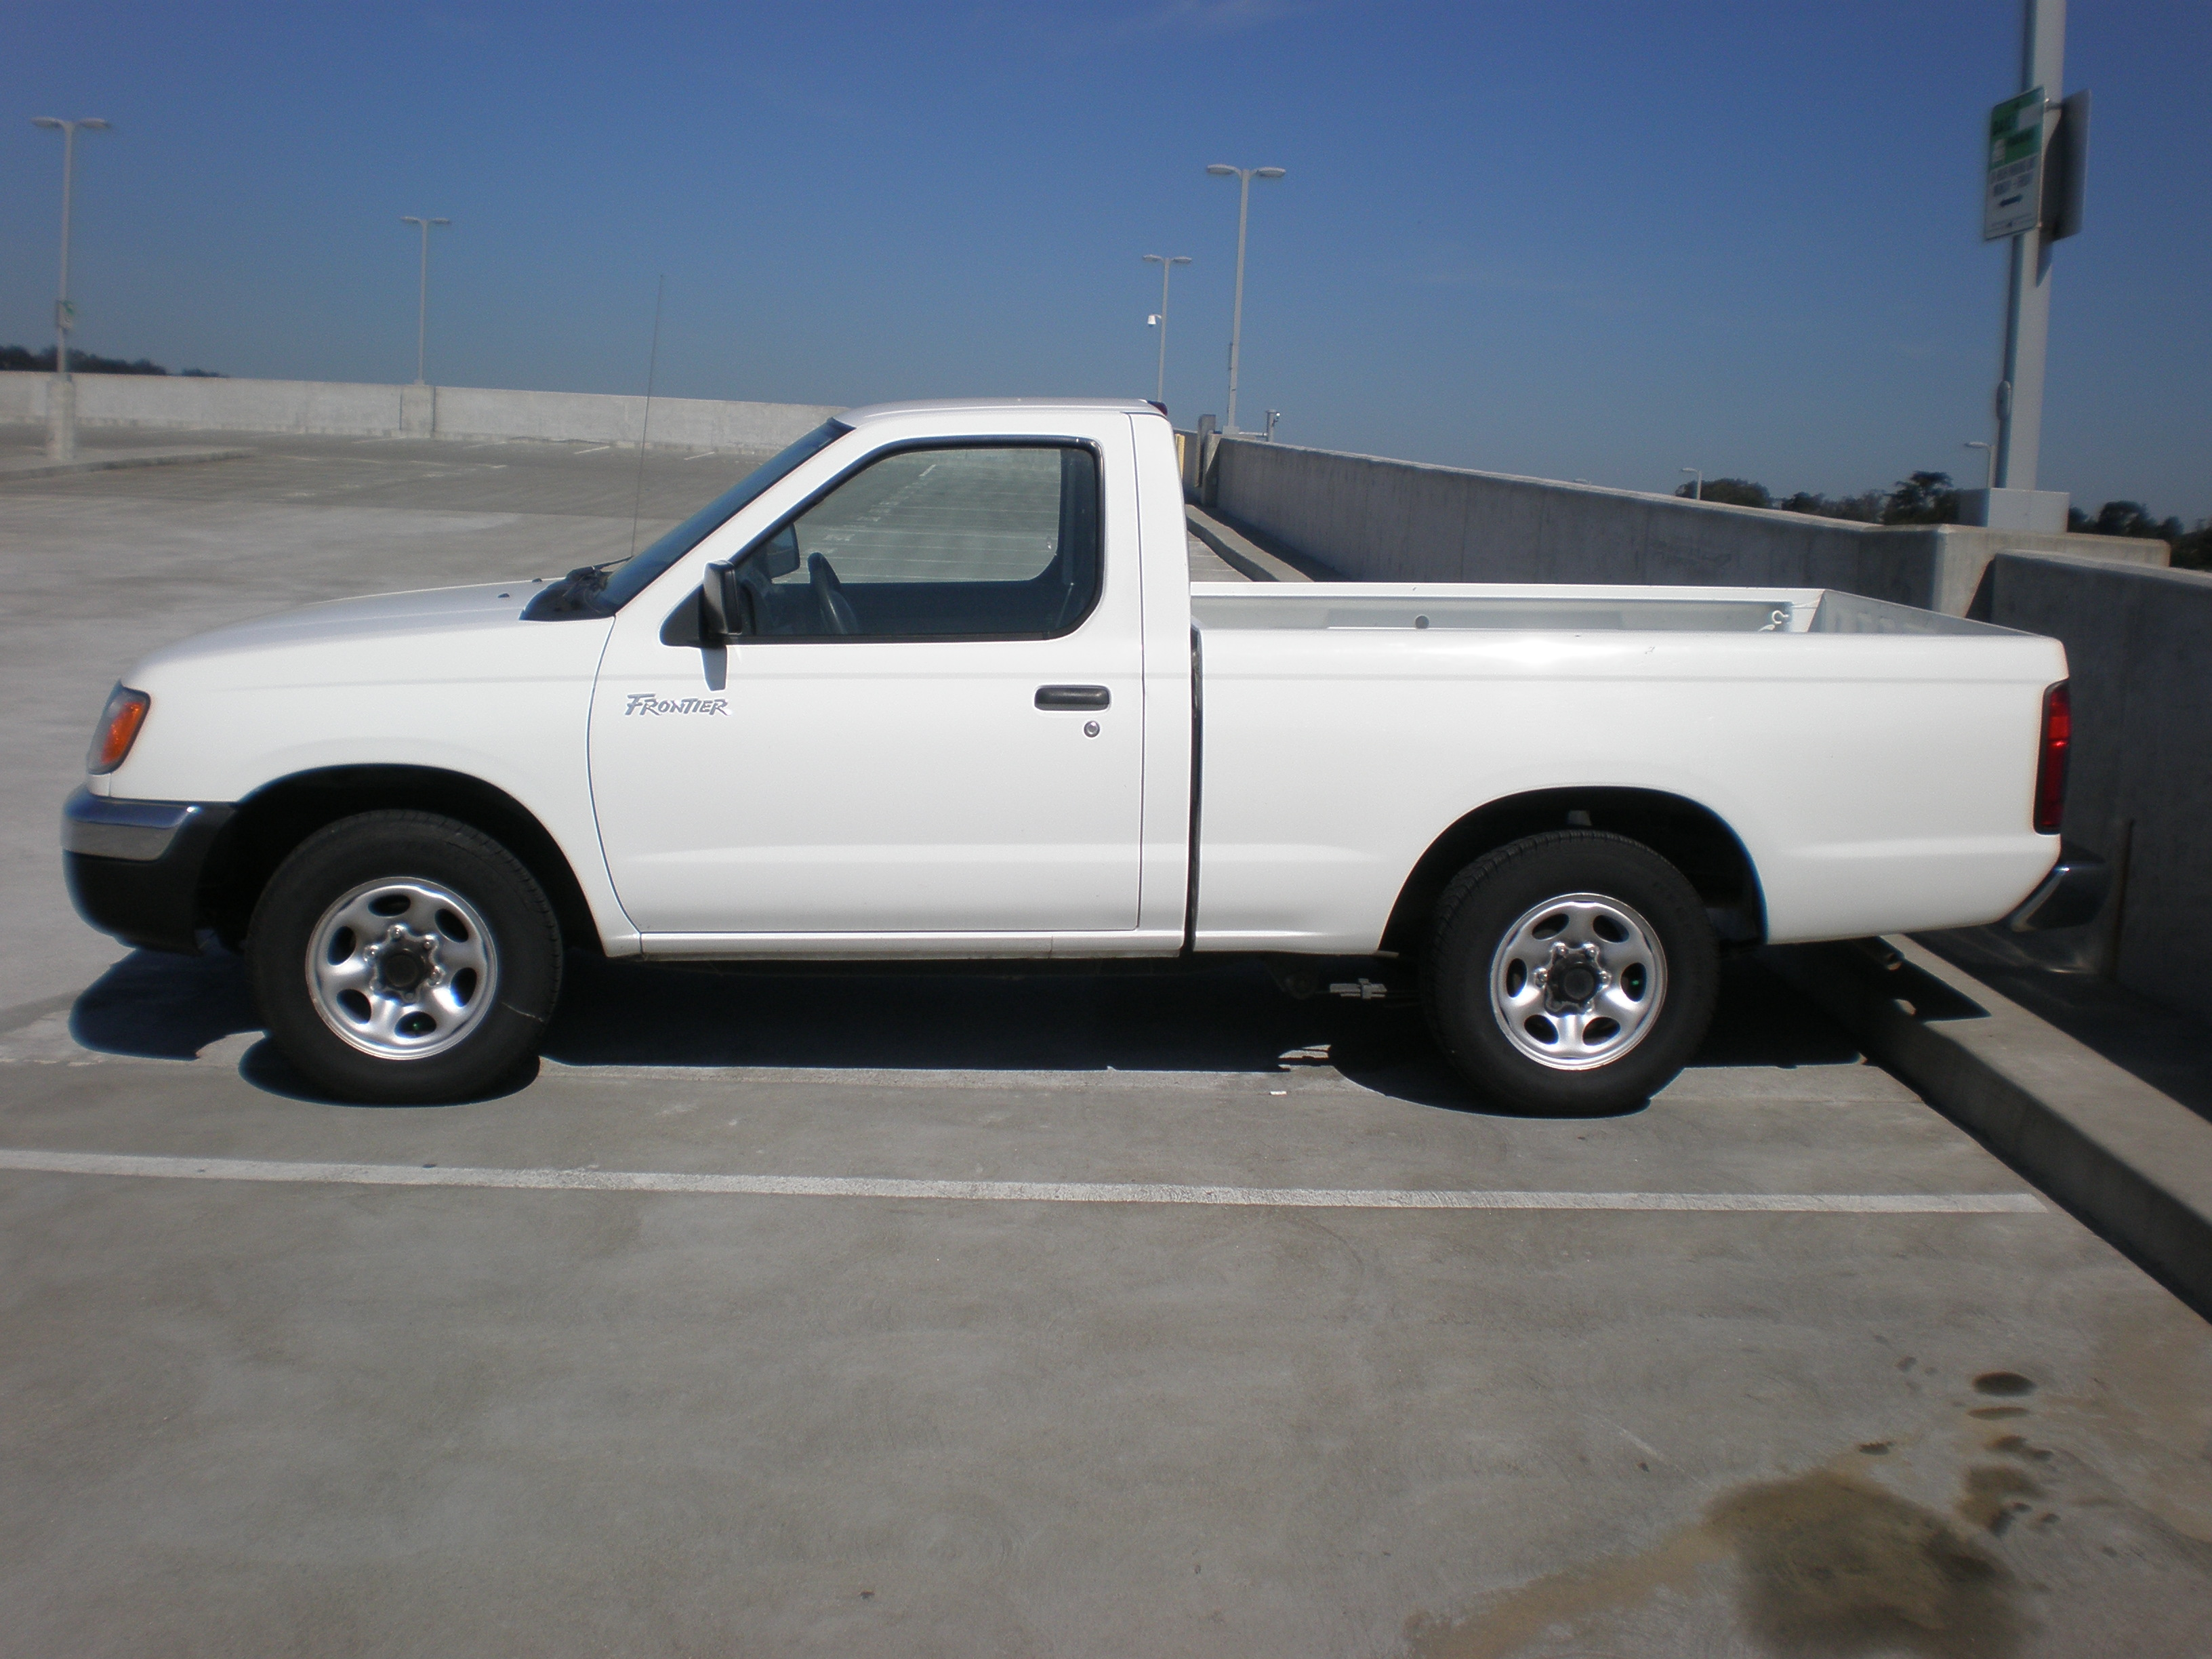 File:1st gen white Nissan Frontier side.JPG - Wikimedia Commons